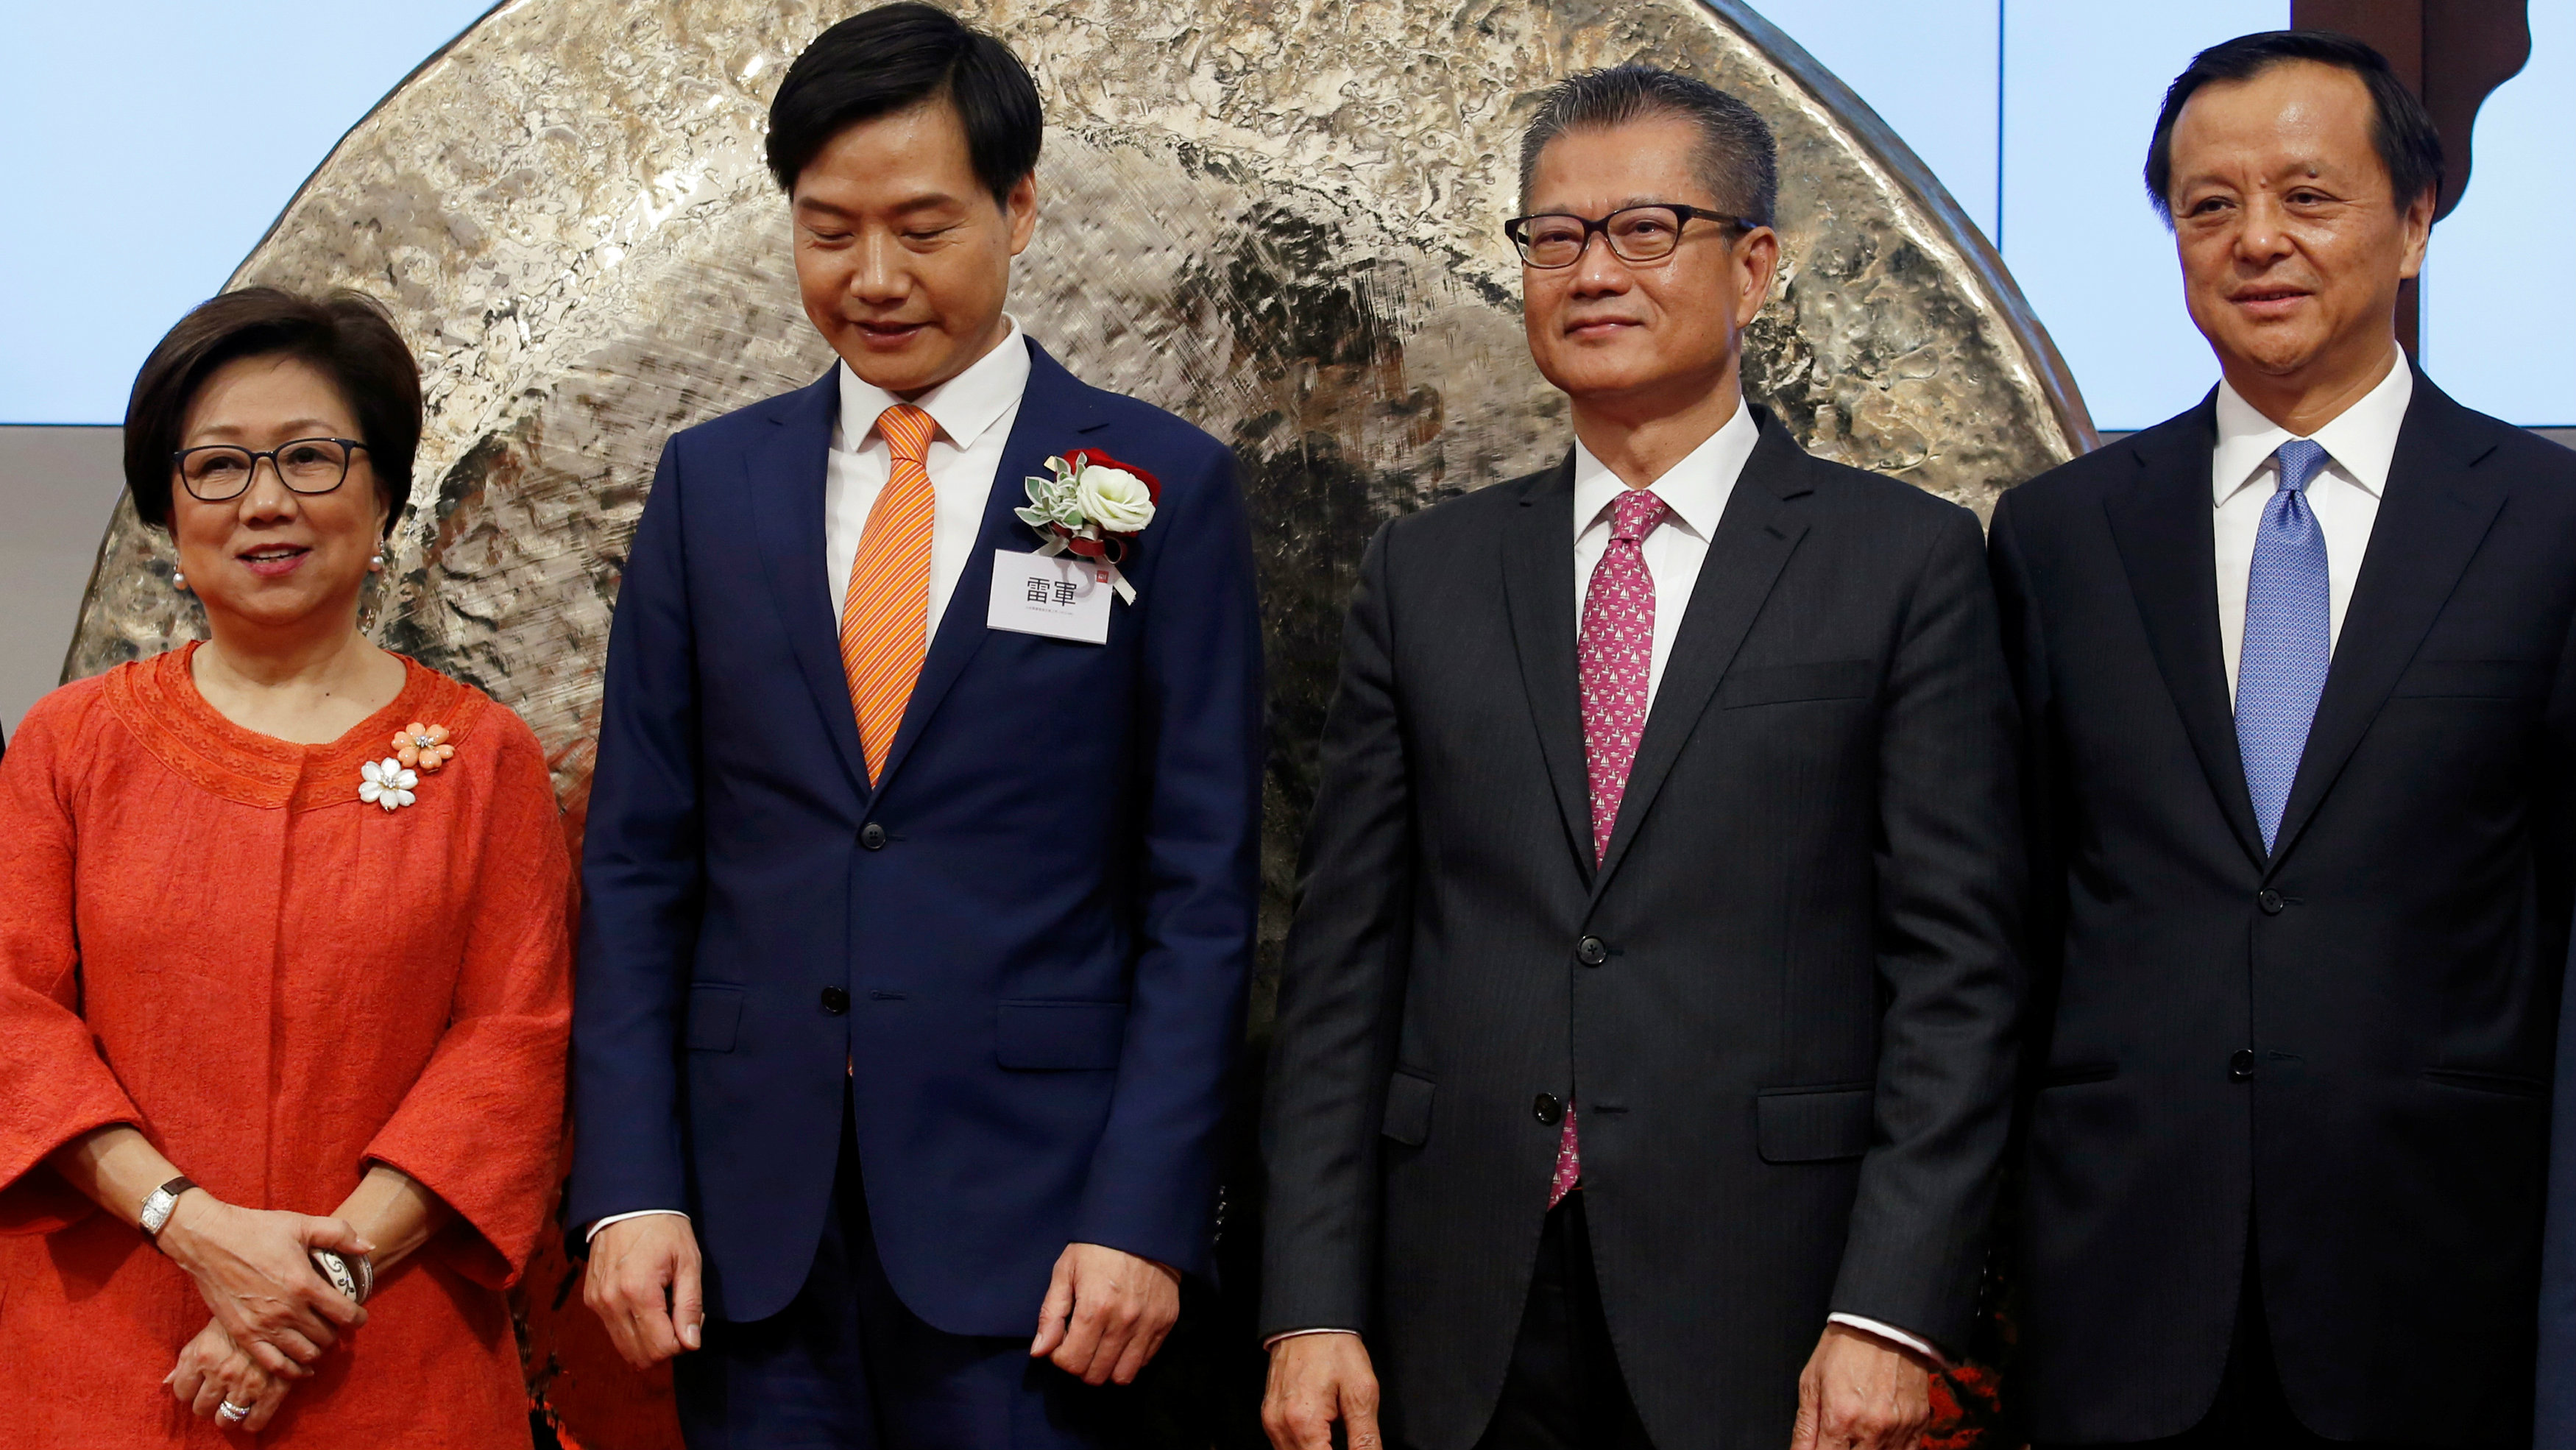 Hong Kong Exchanges and Clearing Chairman Laura Cha, Xiaomi founder, Chairman and CEO Lei Jun, Hong Kong Financial Secretary Paul Chan and Hong Kong Exchanges and Clearing Chief Executive Charles Li attend the listing of Xiaomi at the Hong Kong Exchanges in Hong Kong, China July 9, 2018.